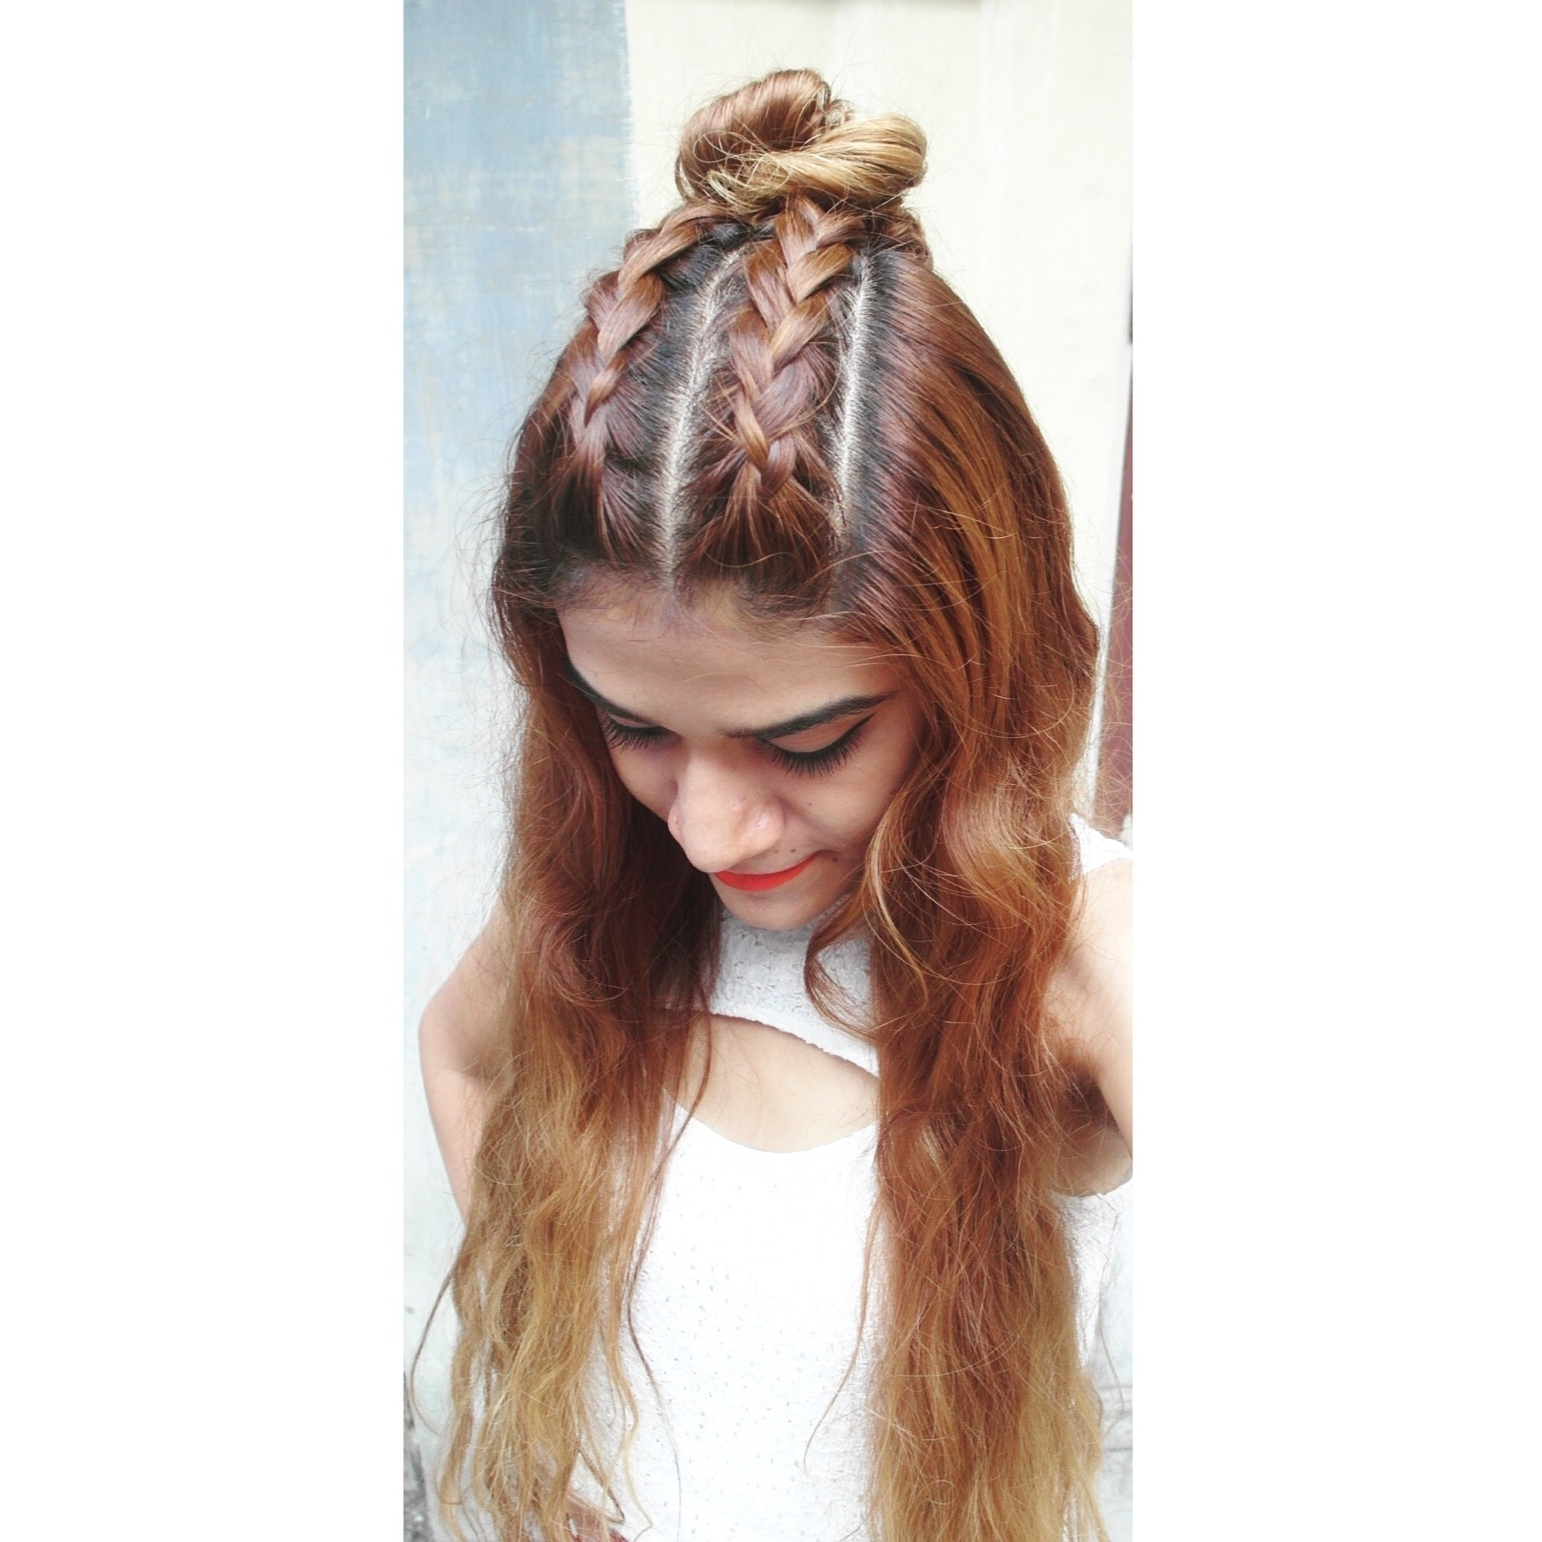 Tanvi Vayla » Double Dutch Braid With Top Knot Half Up Regarding 2018 Pony And Dutch Braid Combo Hairstyles (View 17 of 20)